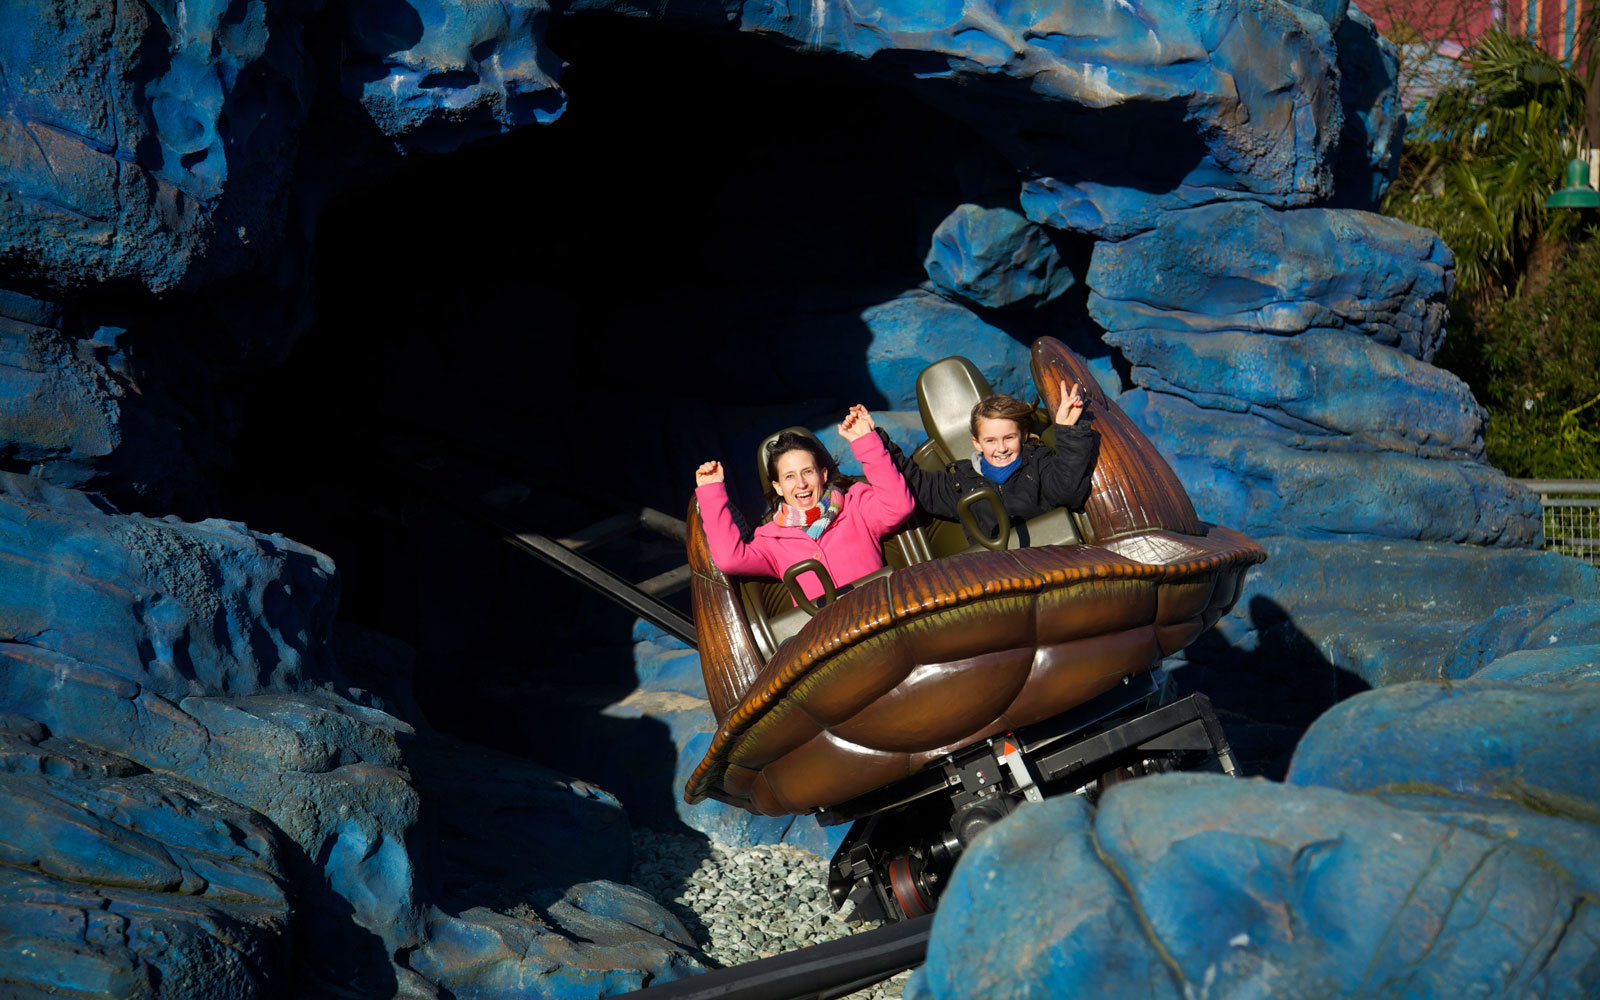 Crsh Coaster in Disneyland Paris